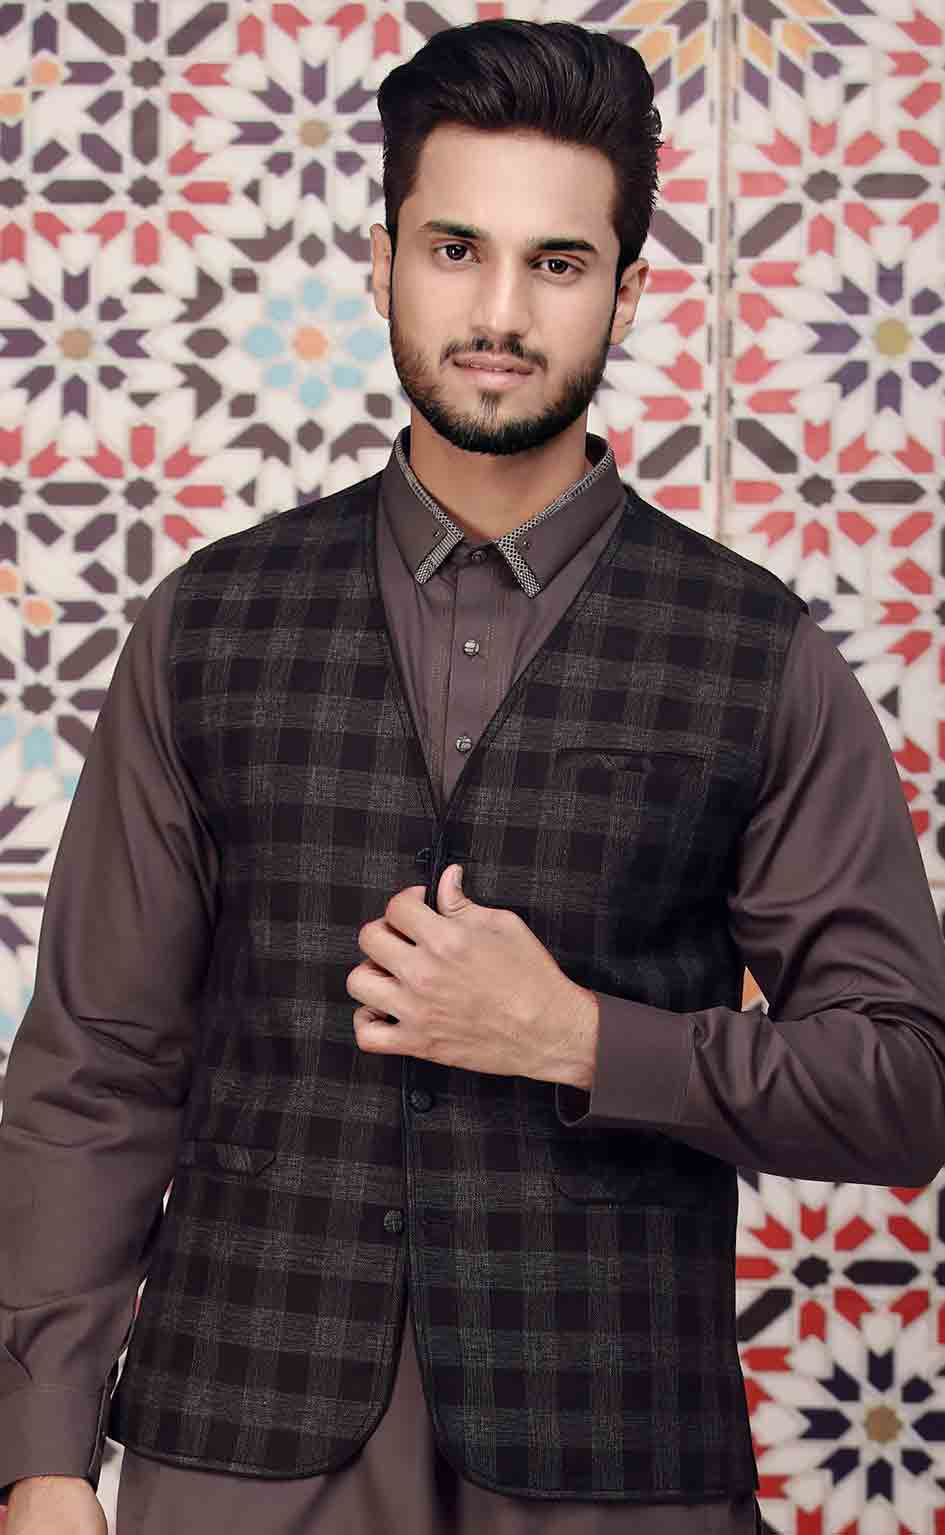 Black waistcoat designs 2017 with dark brown kurta for boys in Pakistan